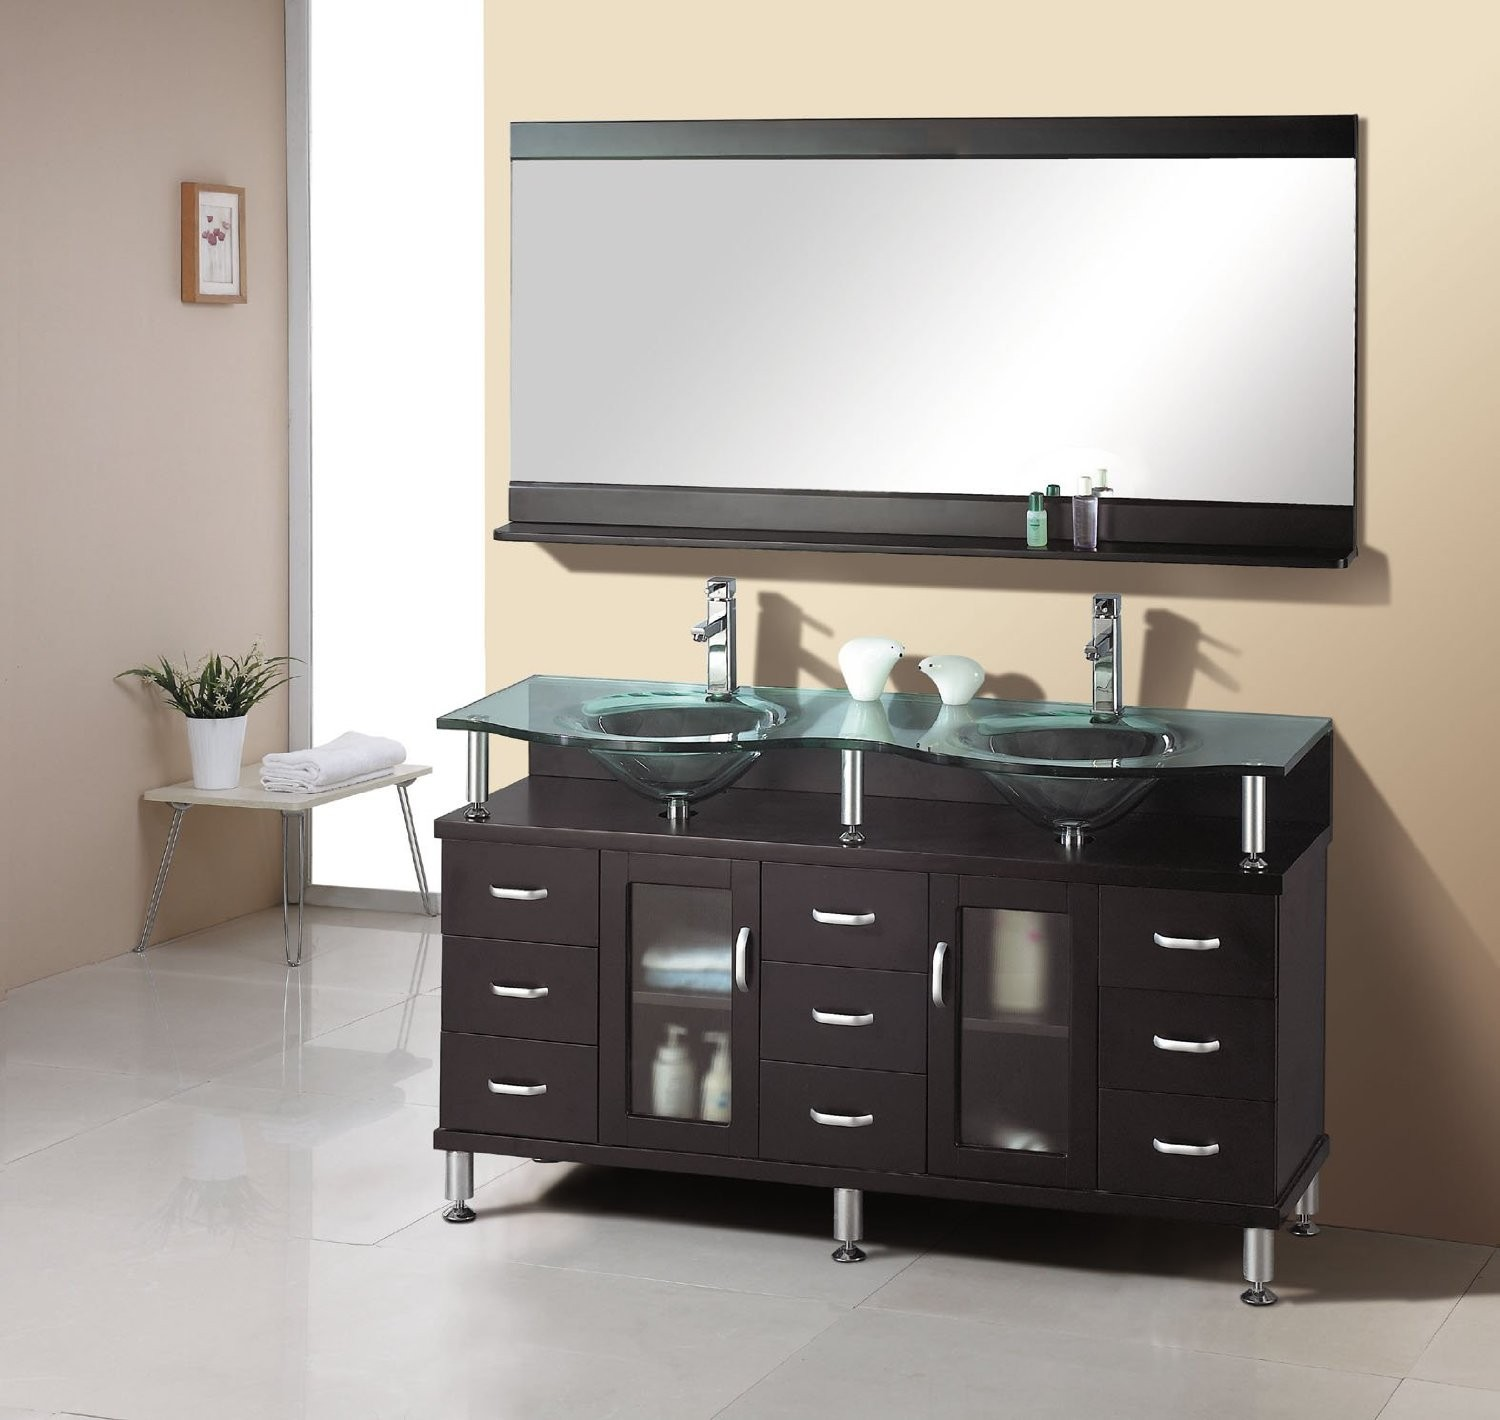 24 Inch Kitchen Sink Base Cabinet